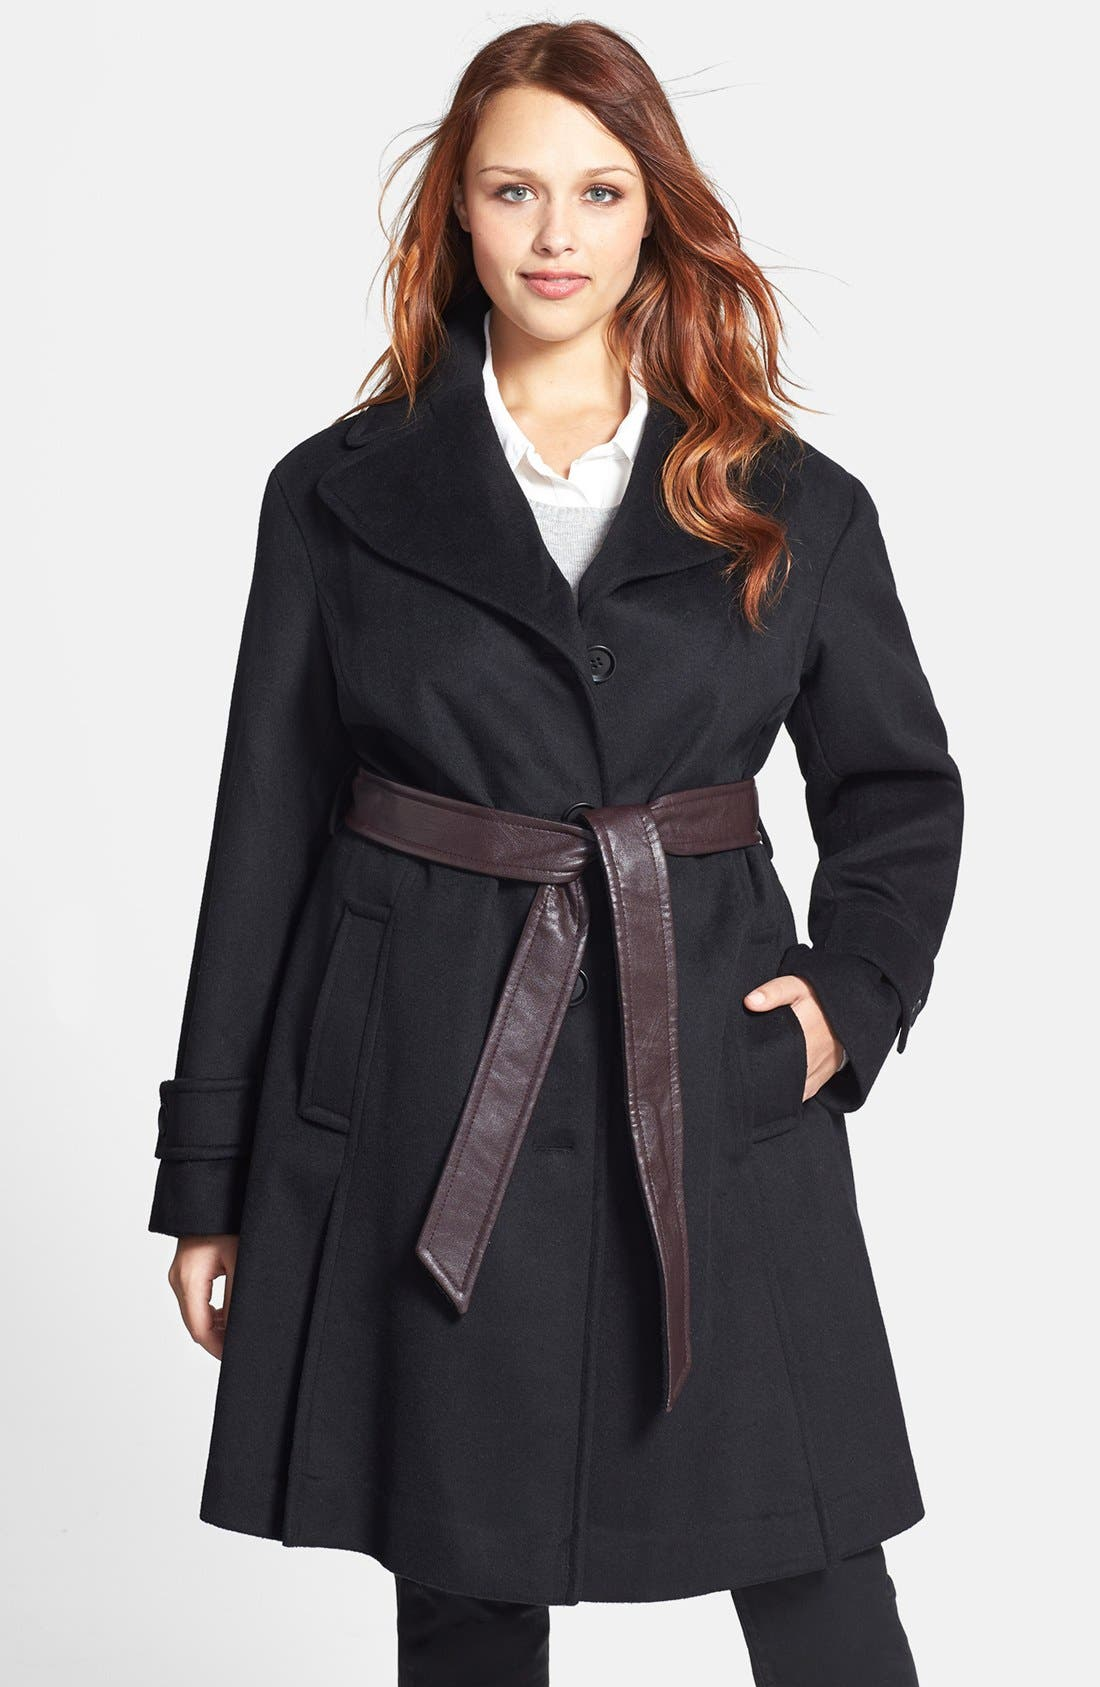 Main Image - DKNY Wool Blend Trench Coat with Faux Leather Belt (Plus Size)